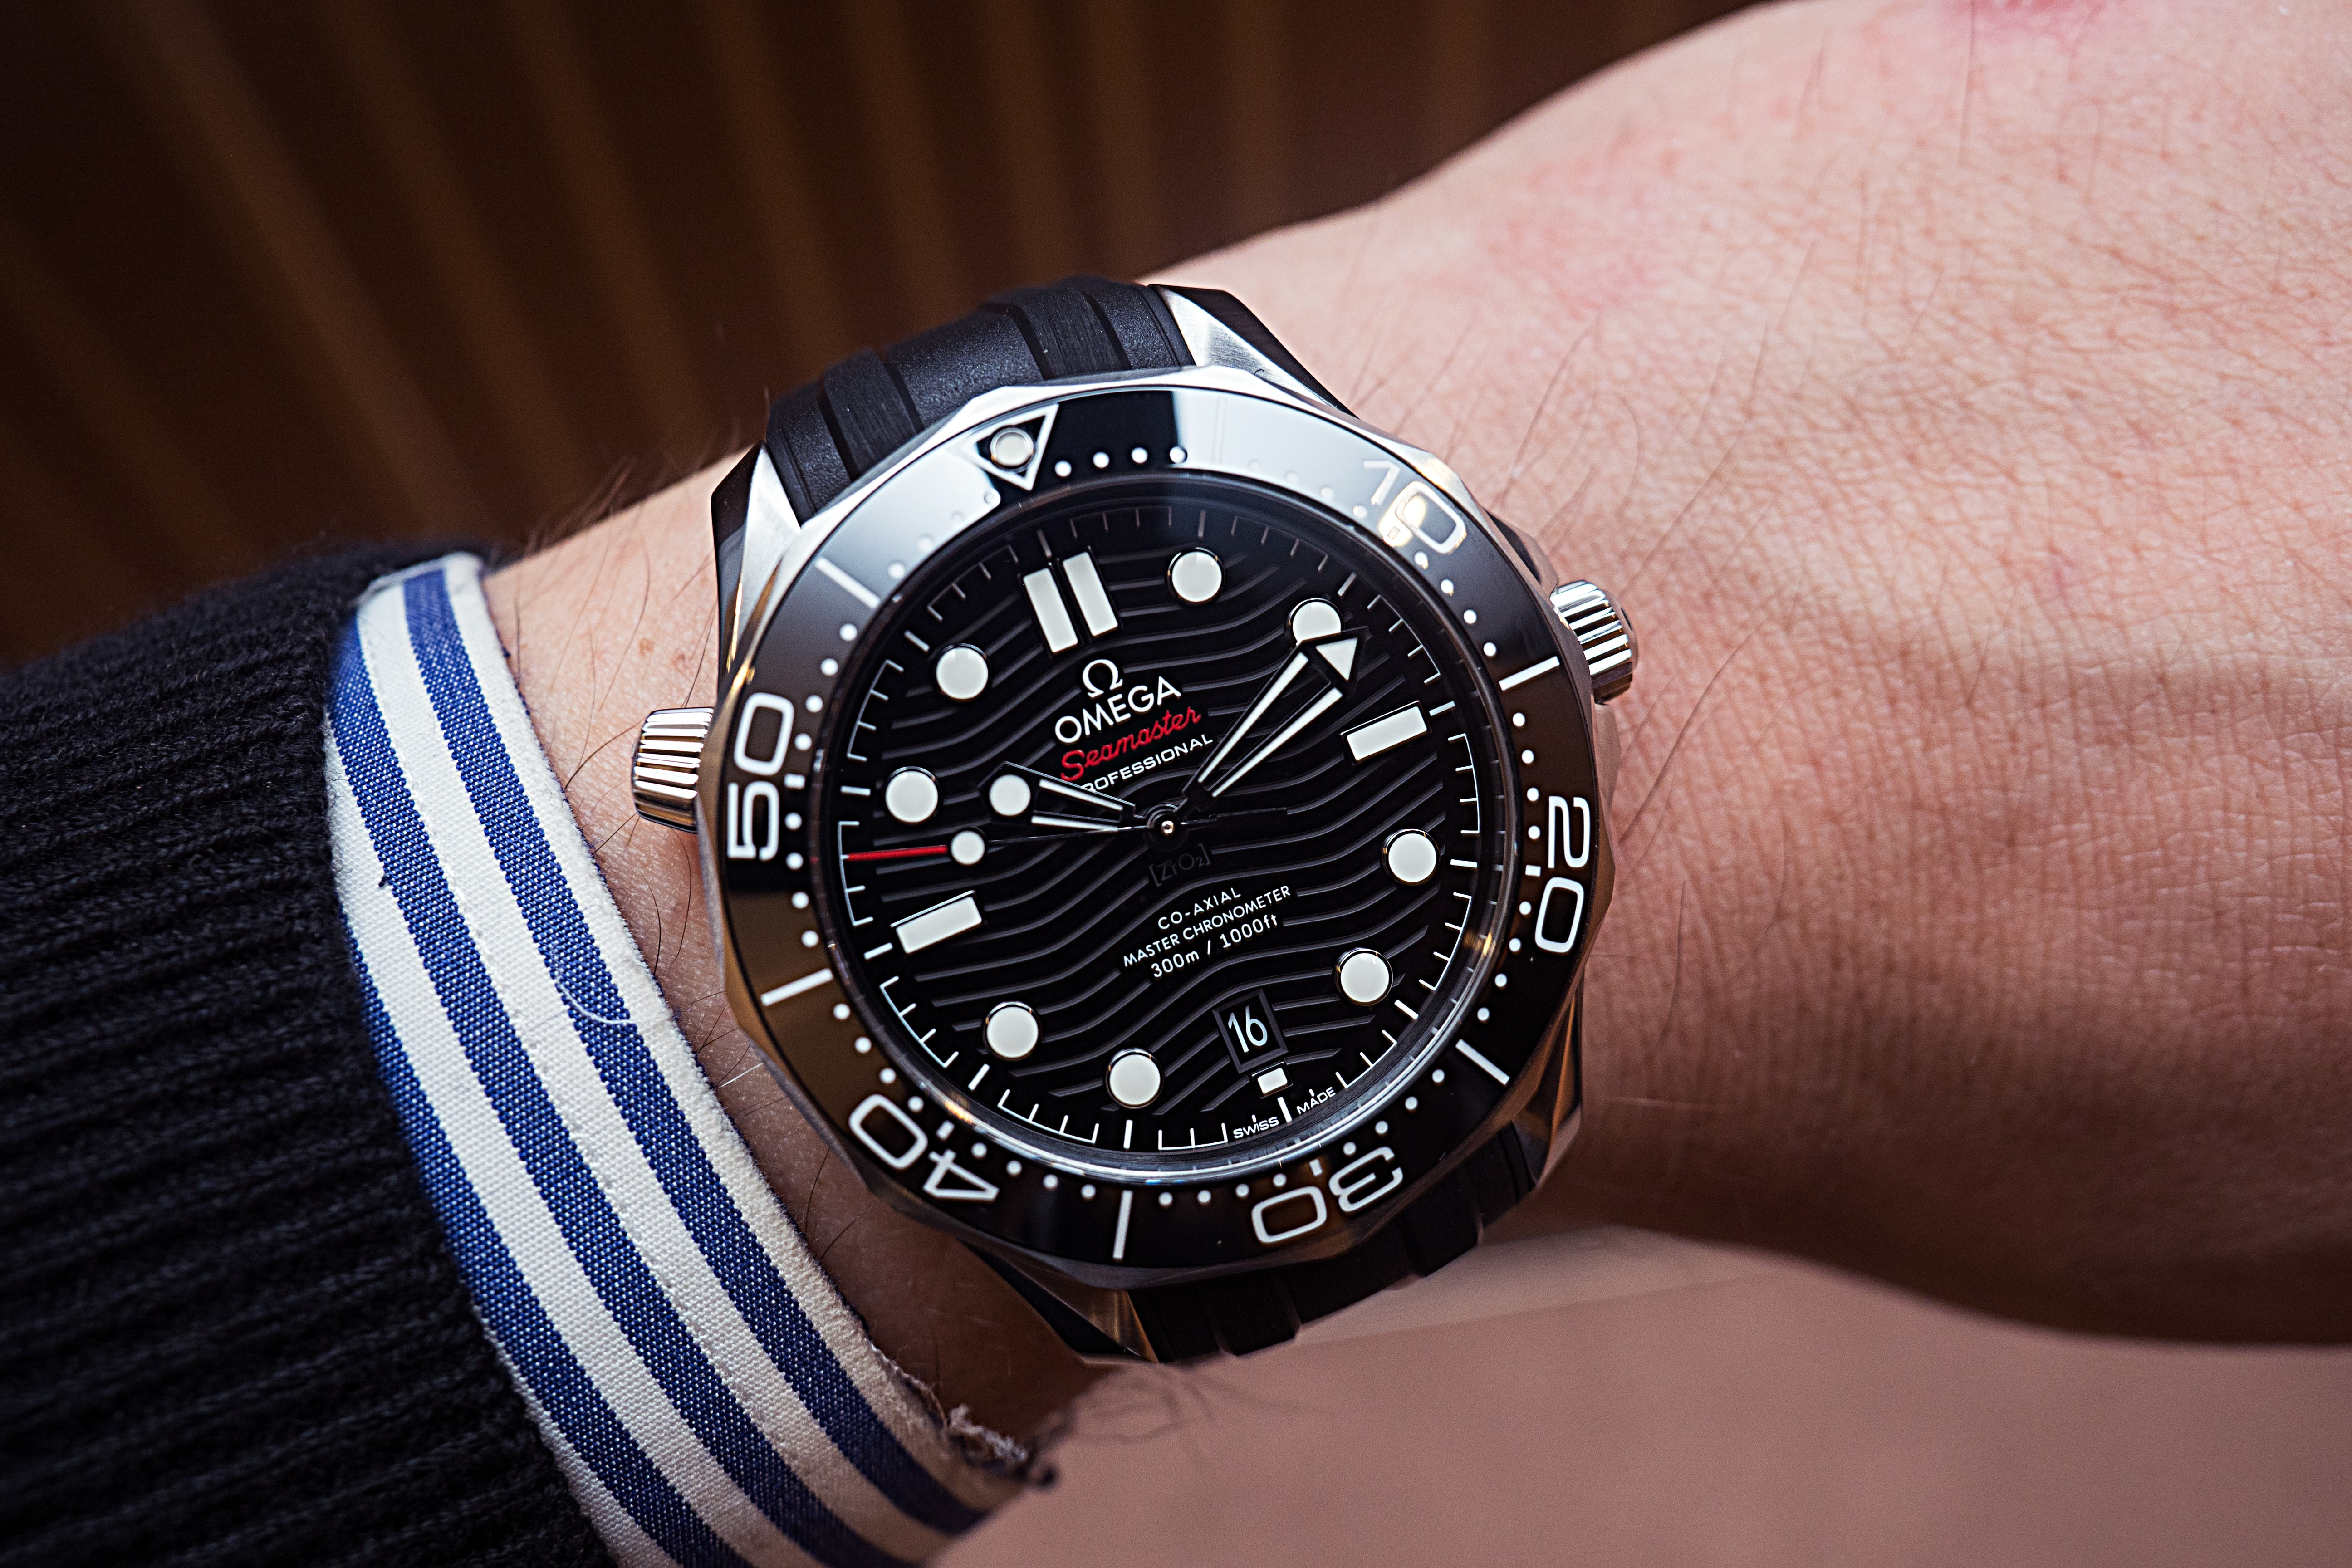 omega-seamaster-pro-300m-on-business-suited-wrist